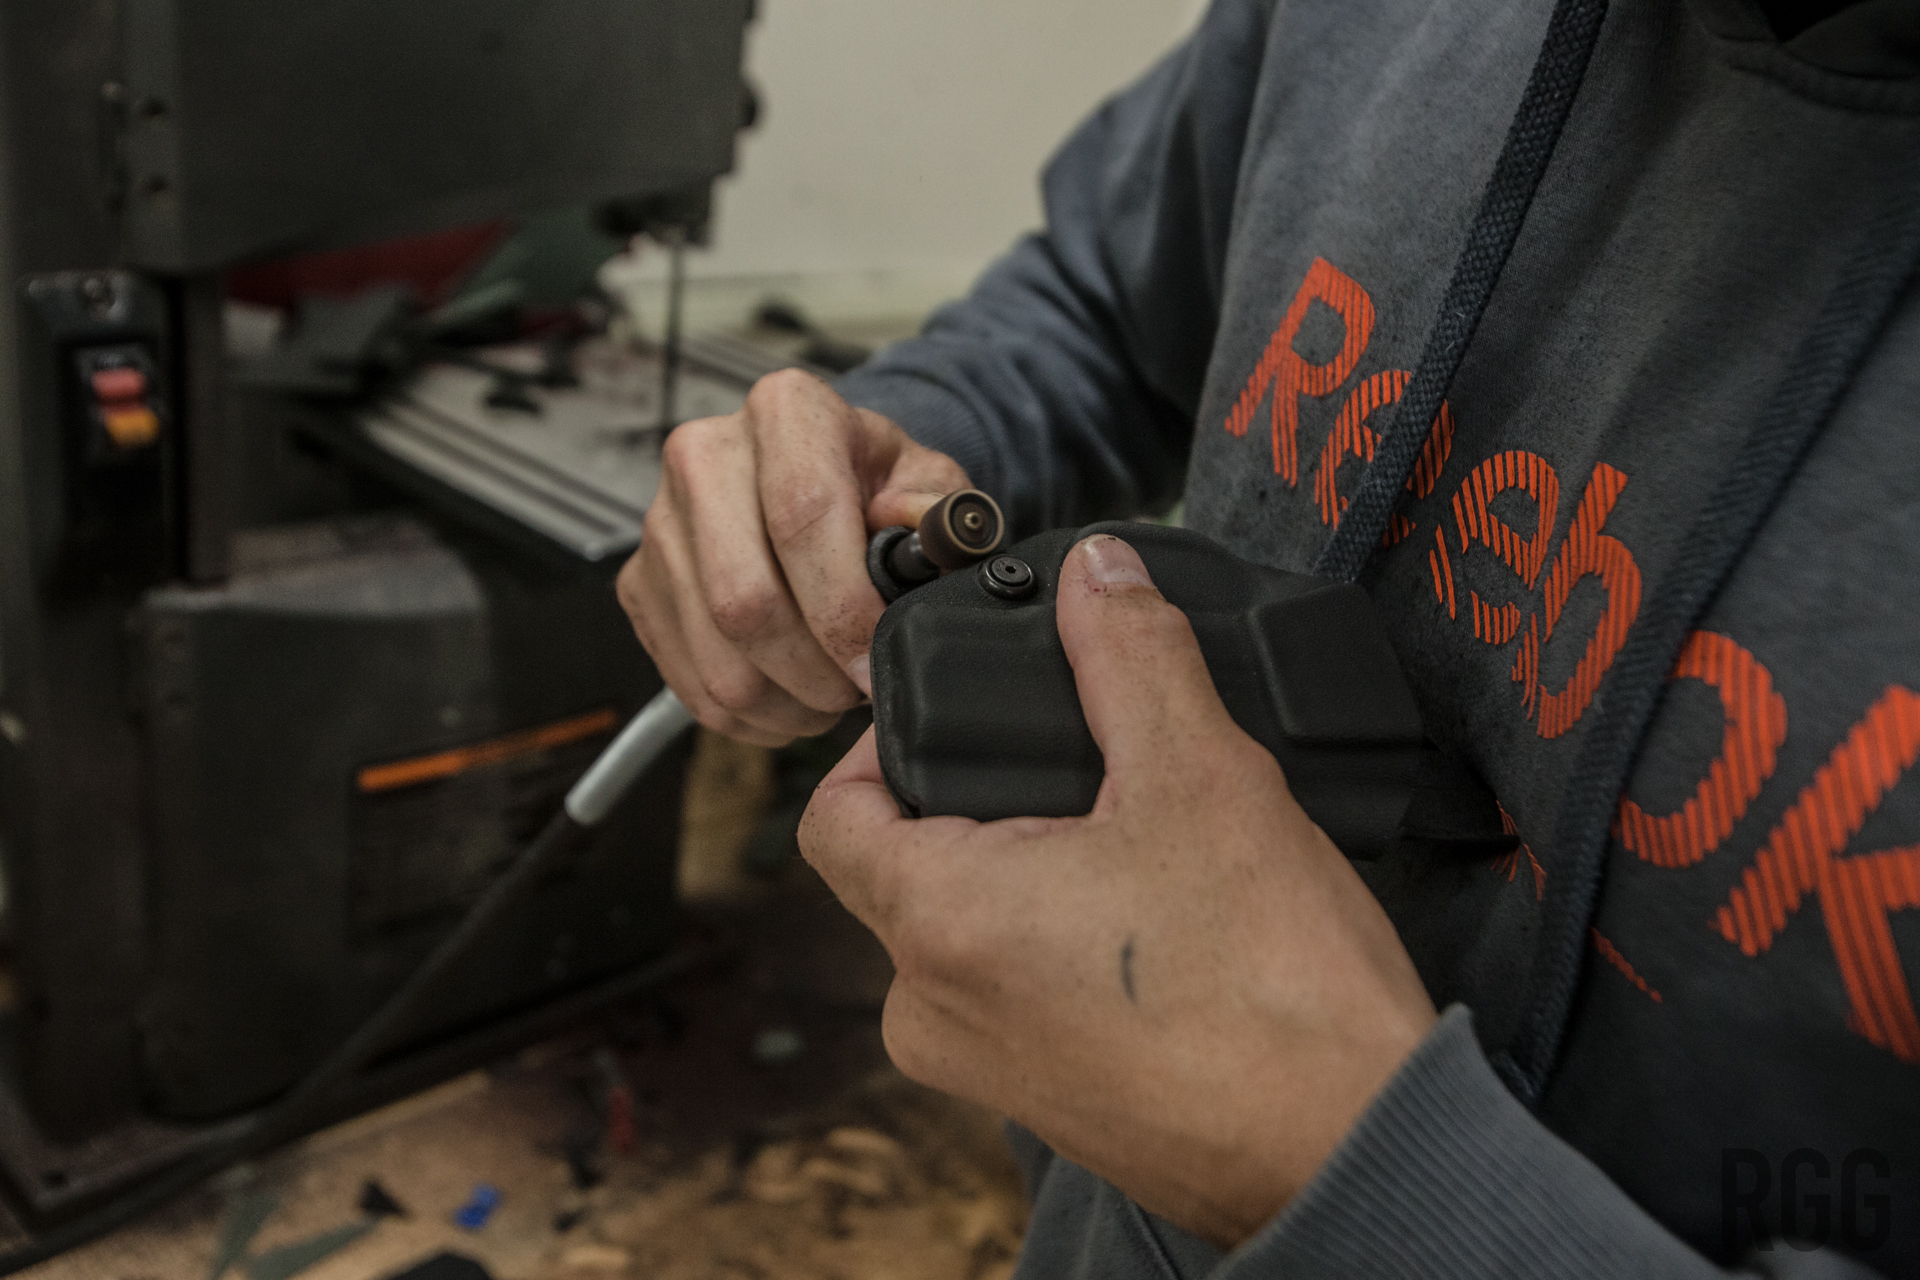 Using a rotary tool, Orion smooths out the burrs and bumps from the almost-finished product for ergonomic reasons...